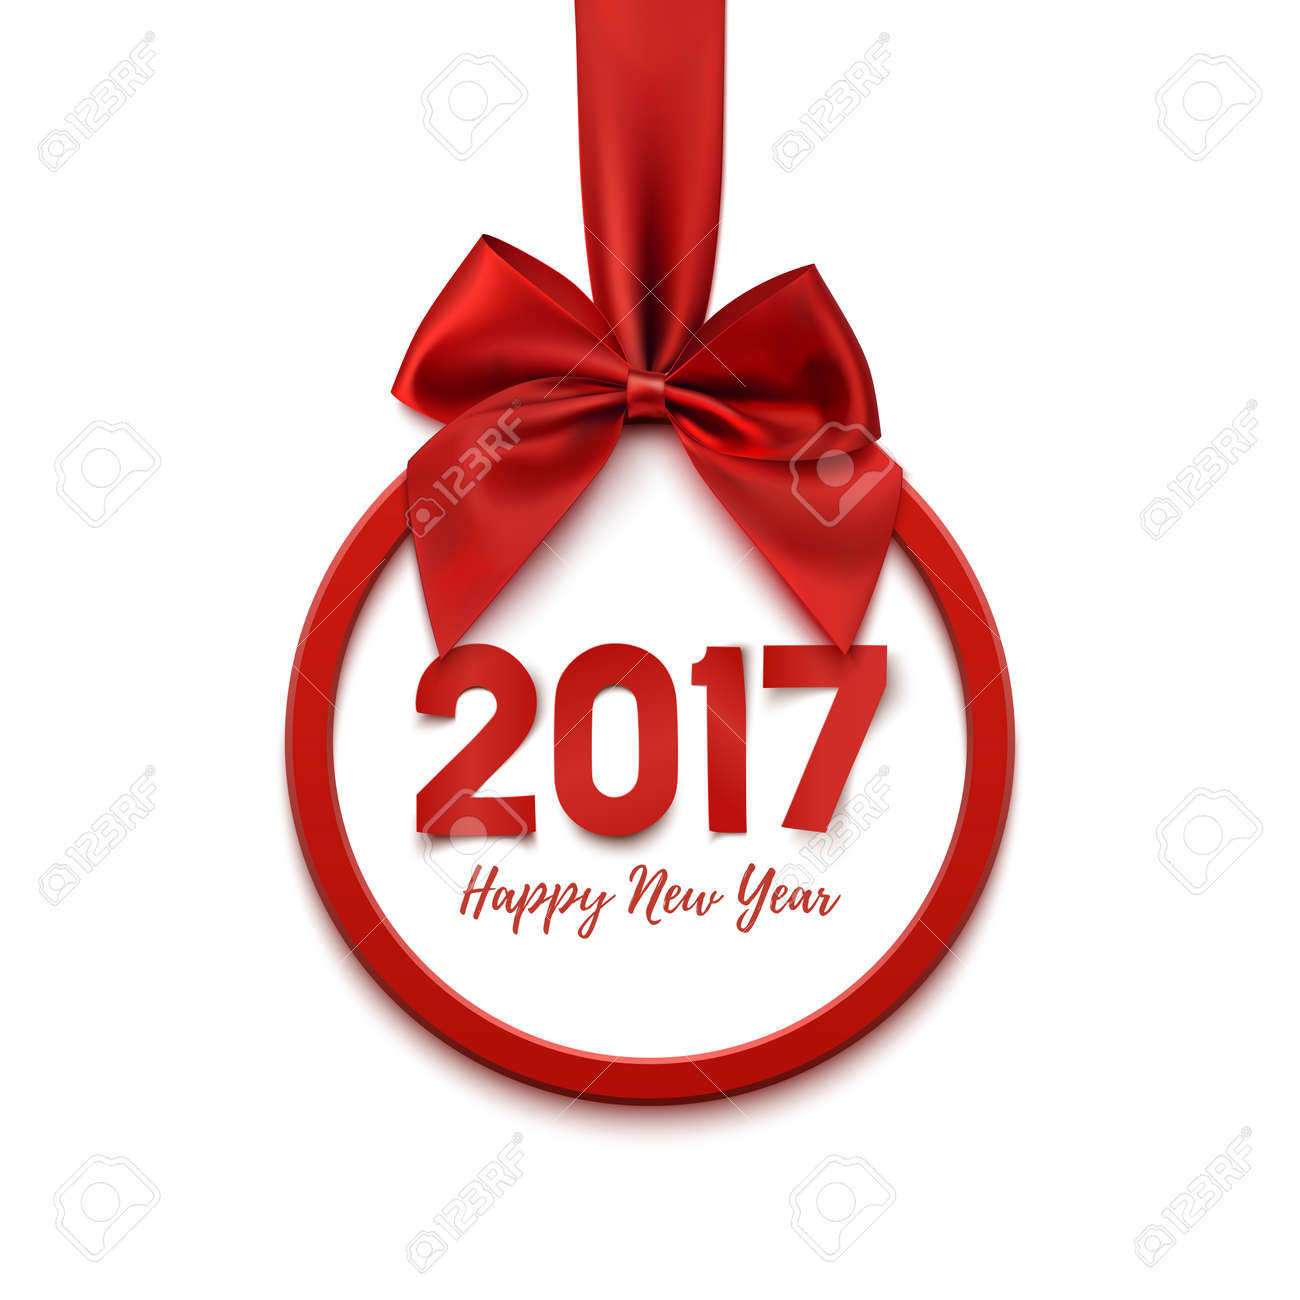 happy new year 2017 round banner with red ribbon and bow on white background